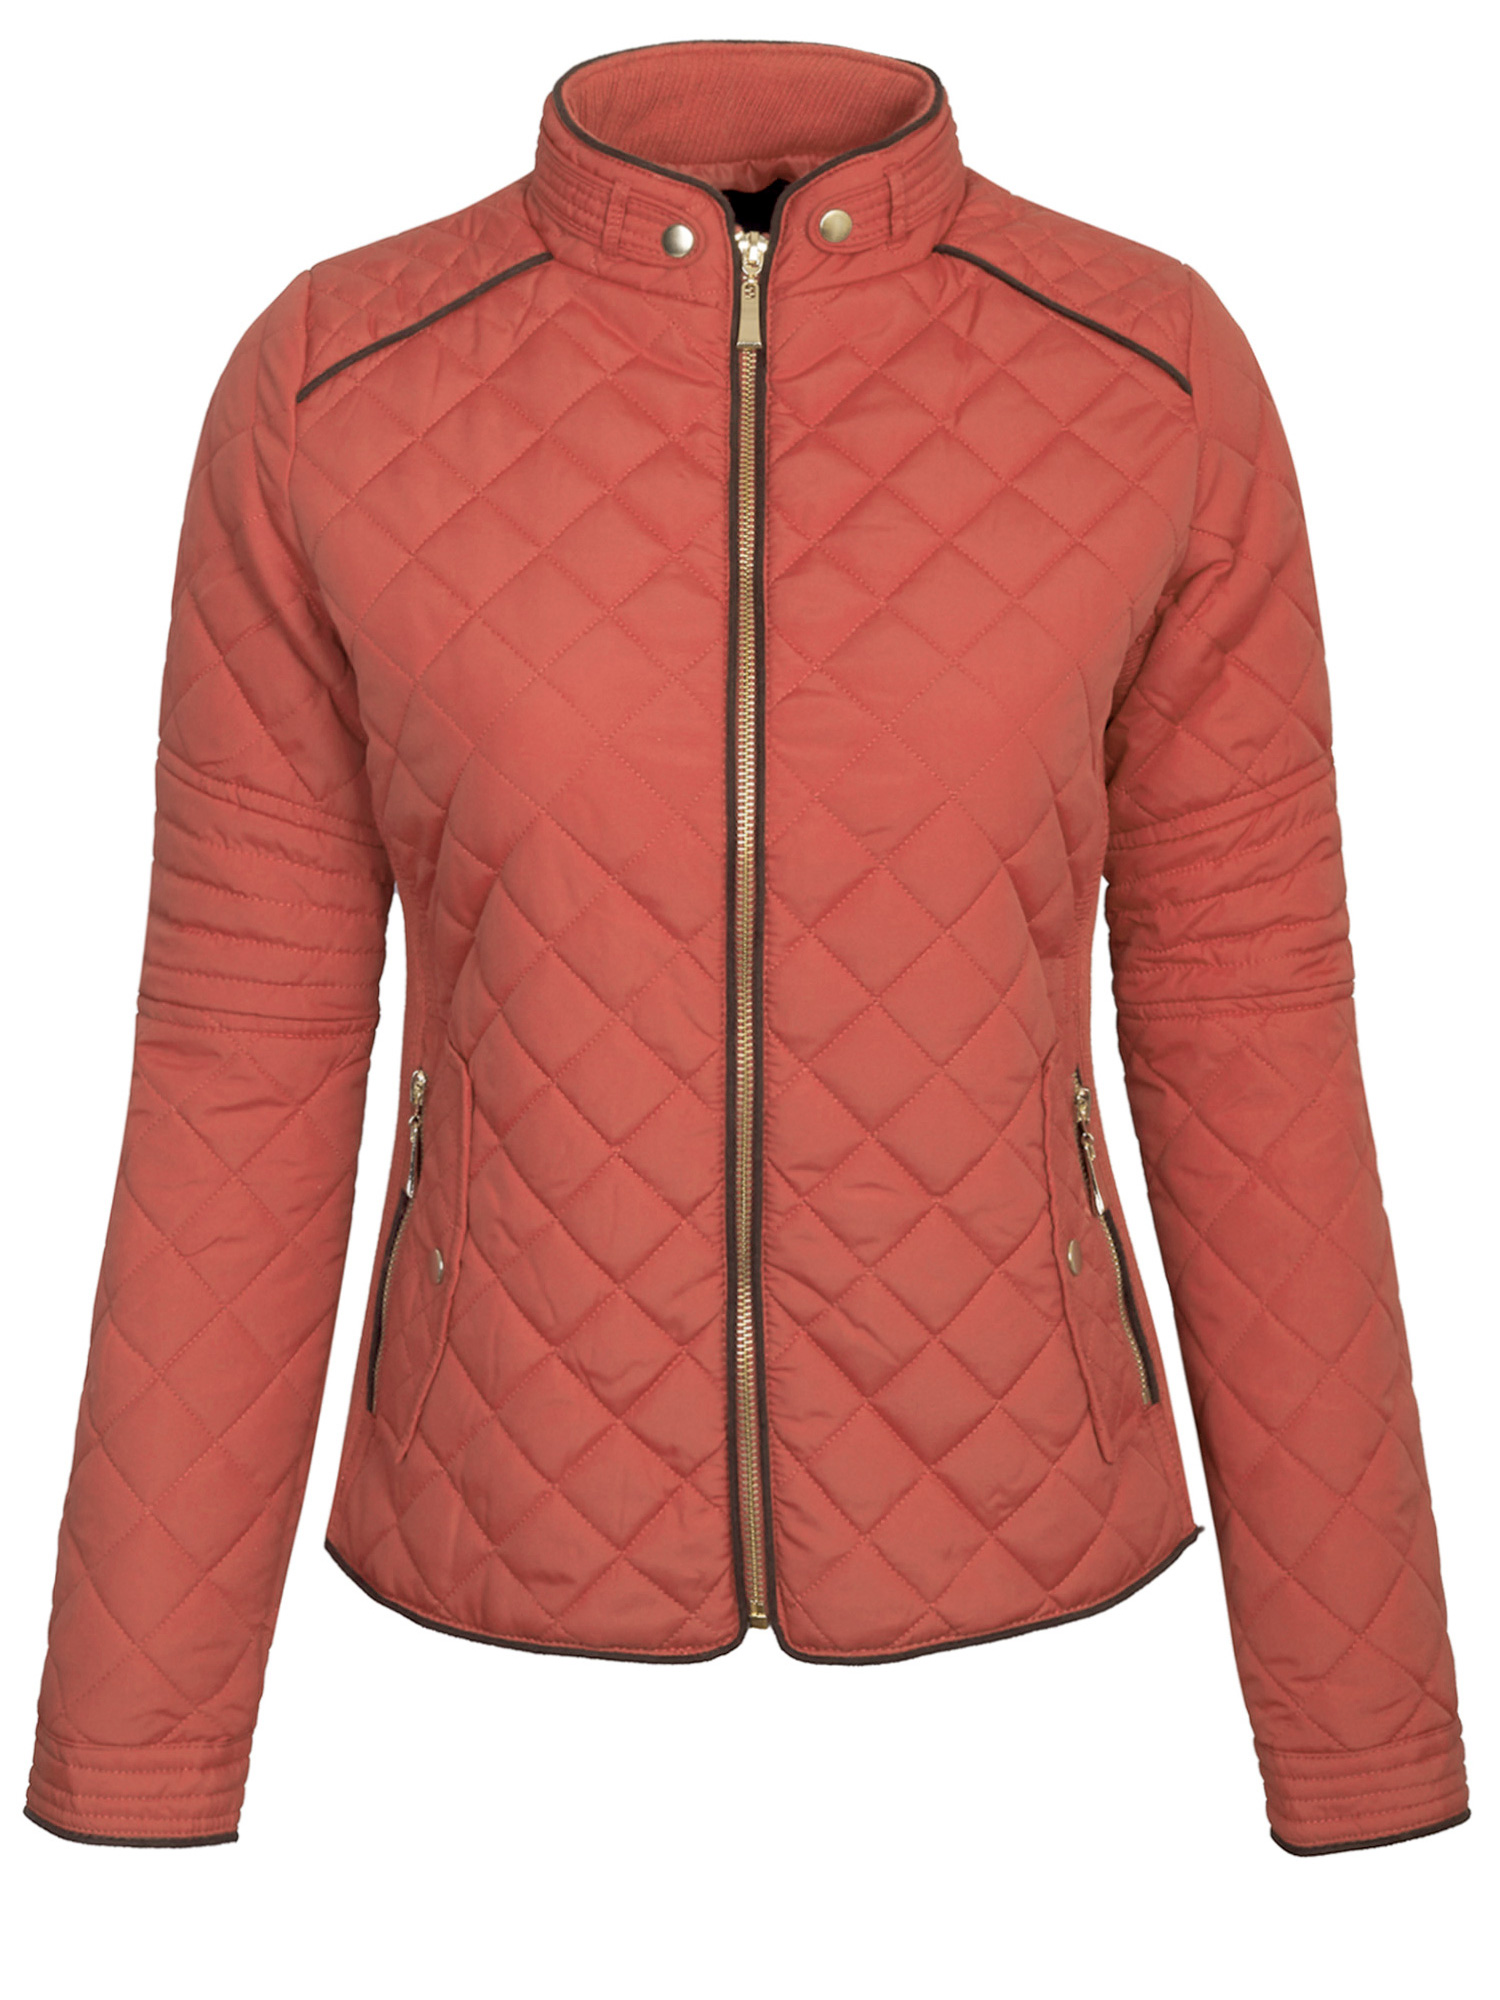 KOGMO Womens Quilted Jacket Fully Lined Lightweight Zip Up Jacket S-3X Plus